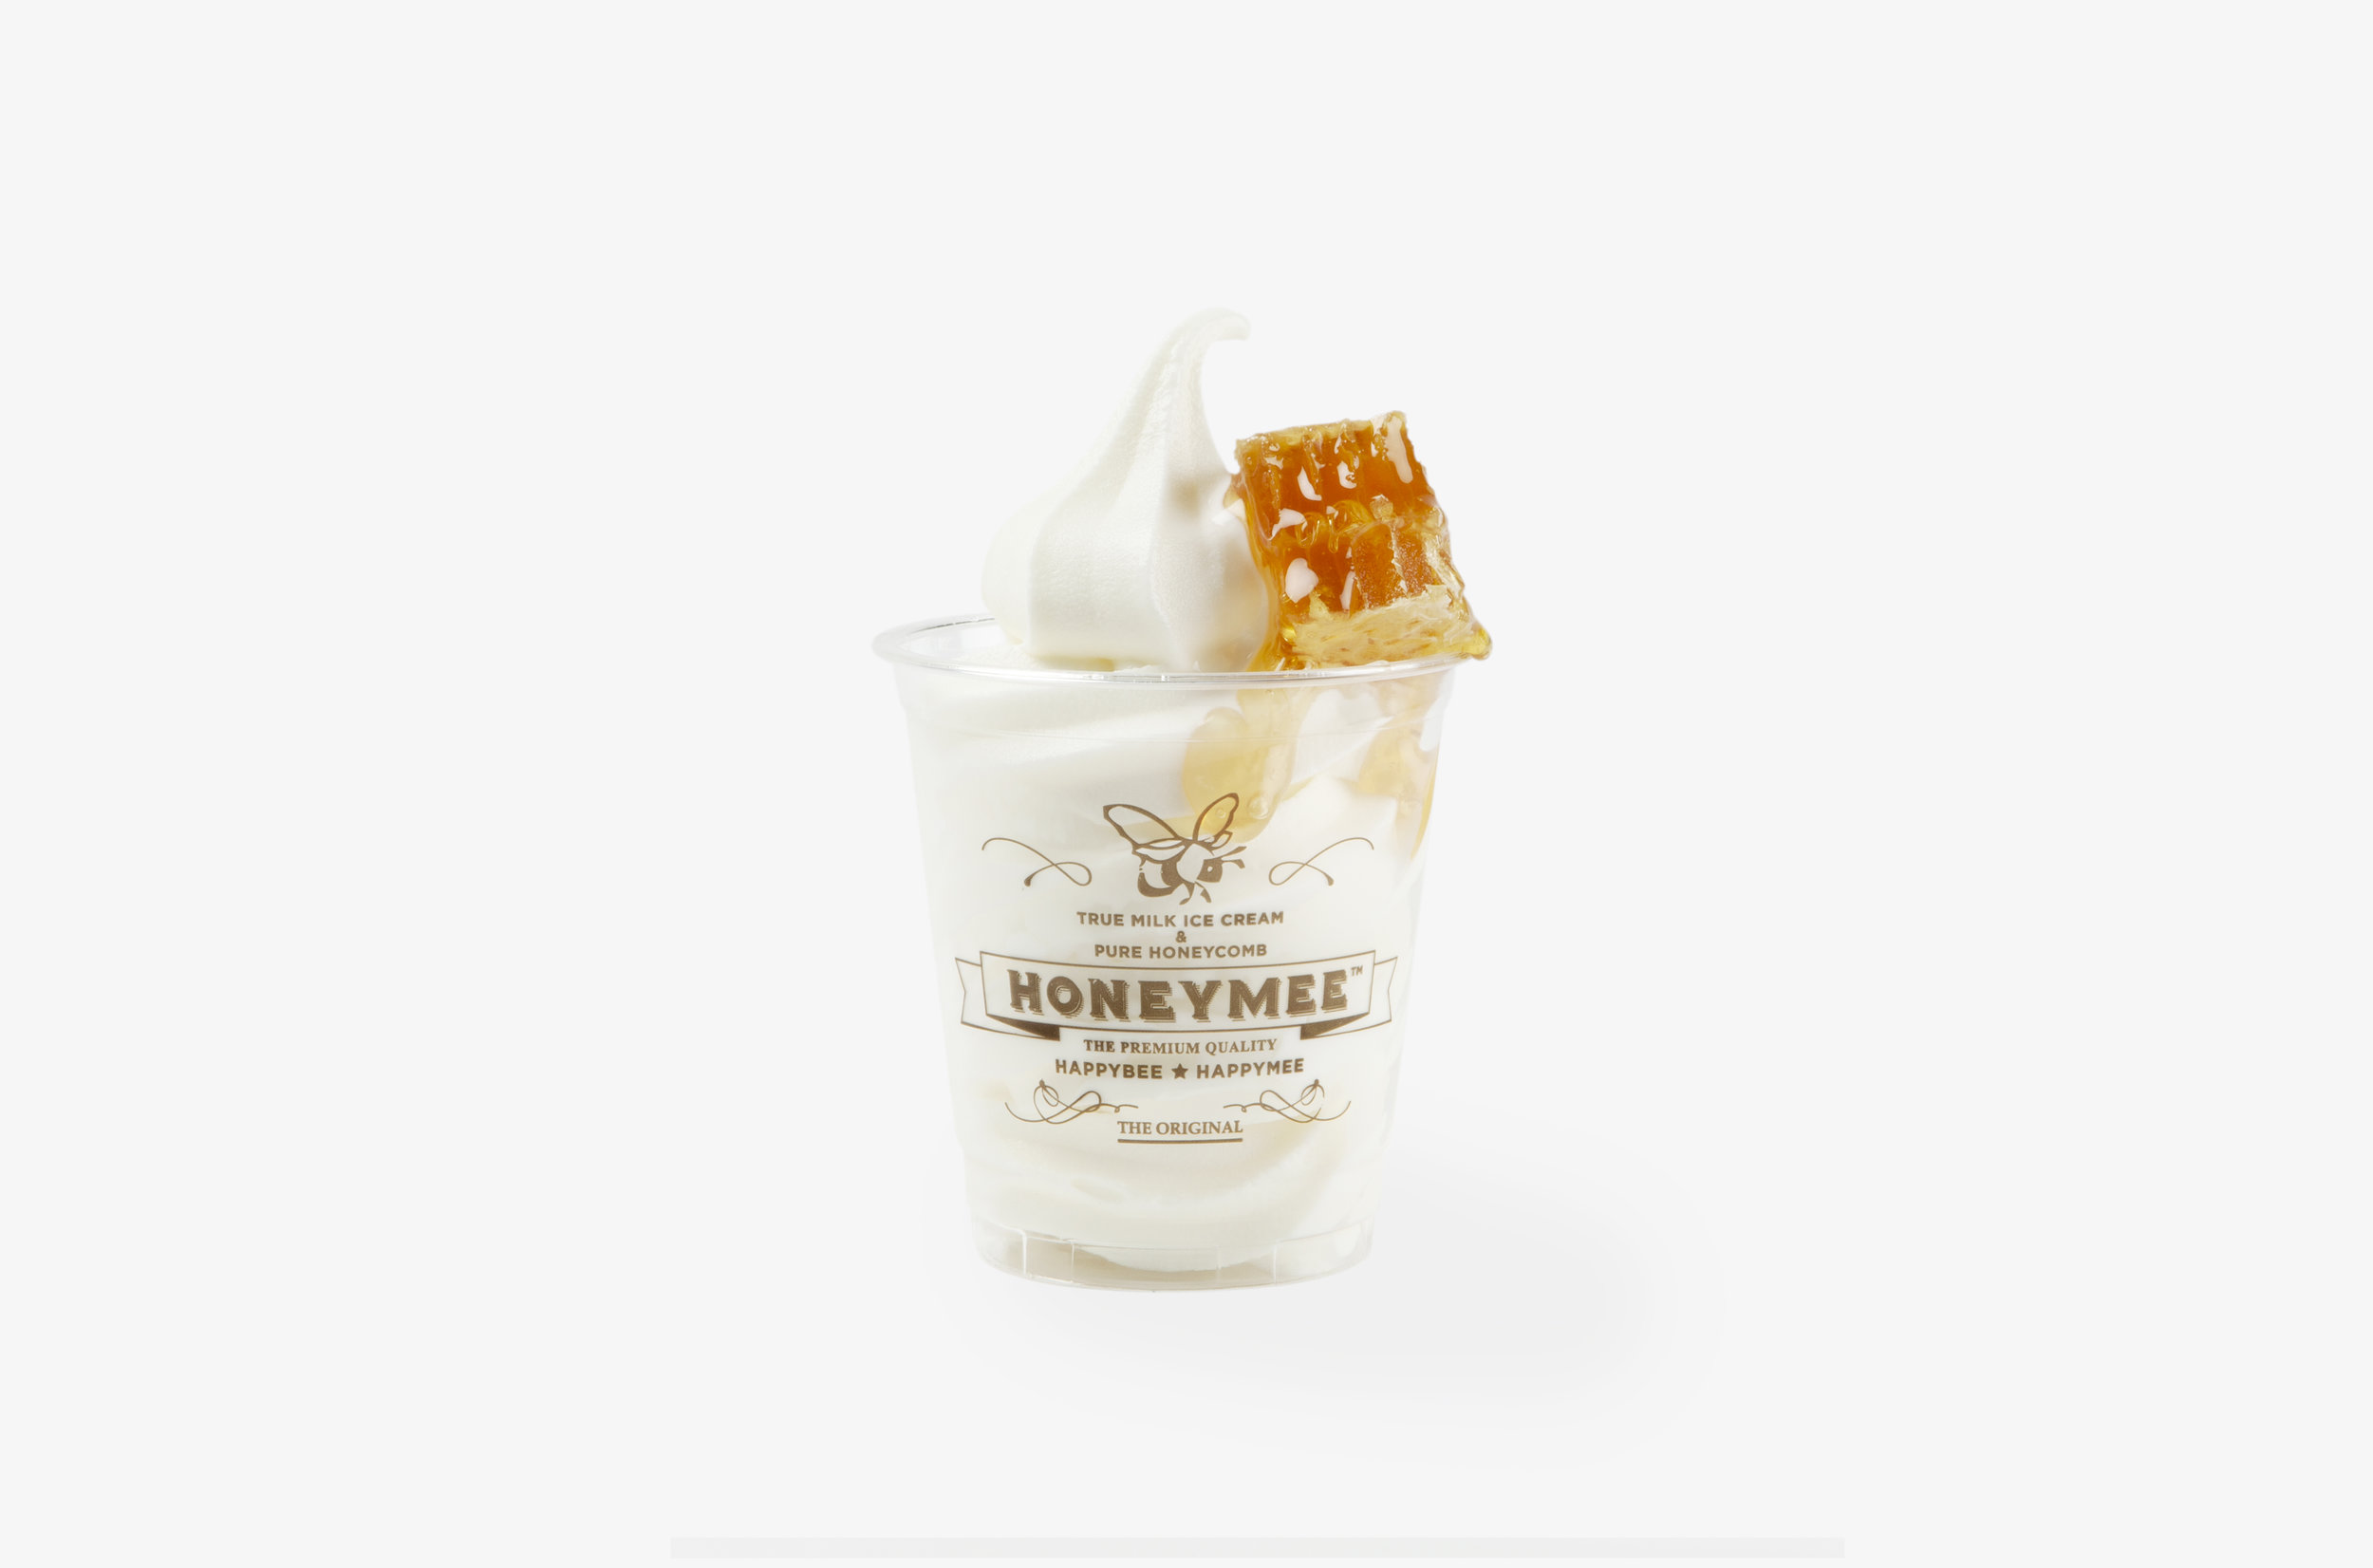 Honeymee Ice Cream